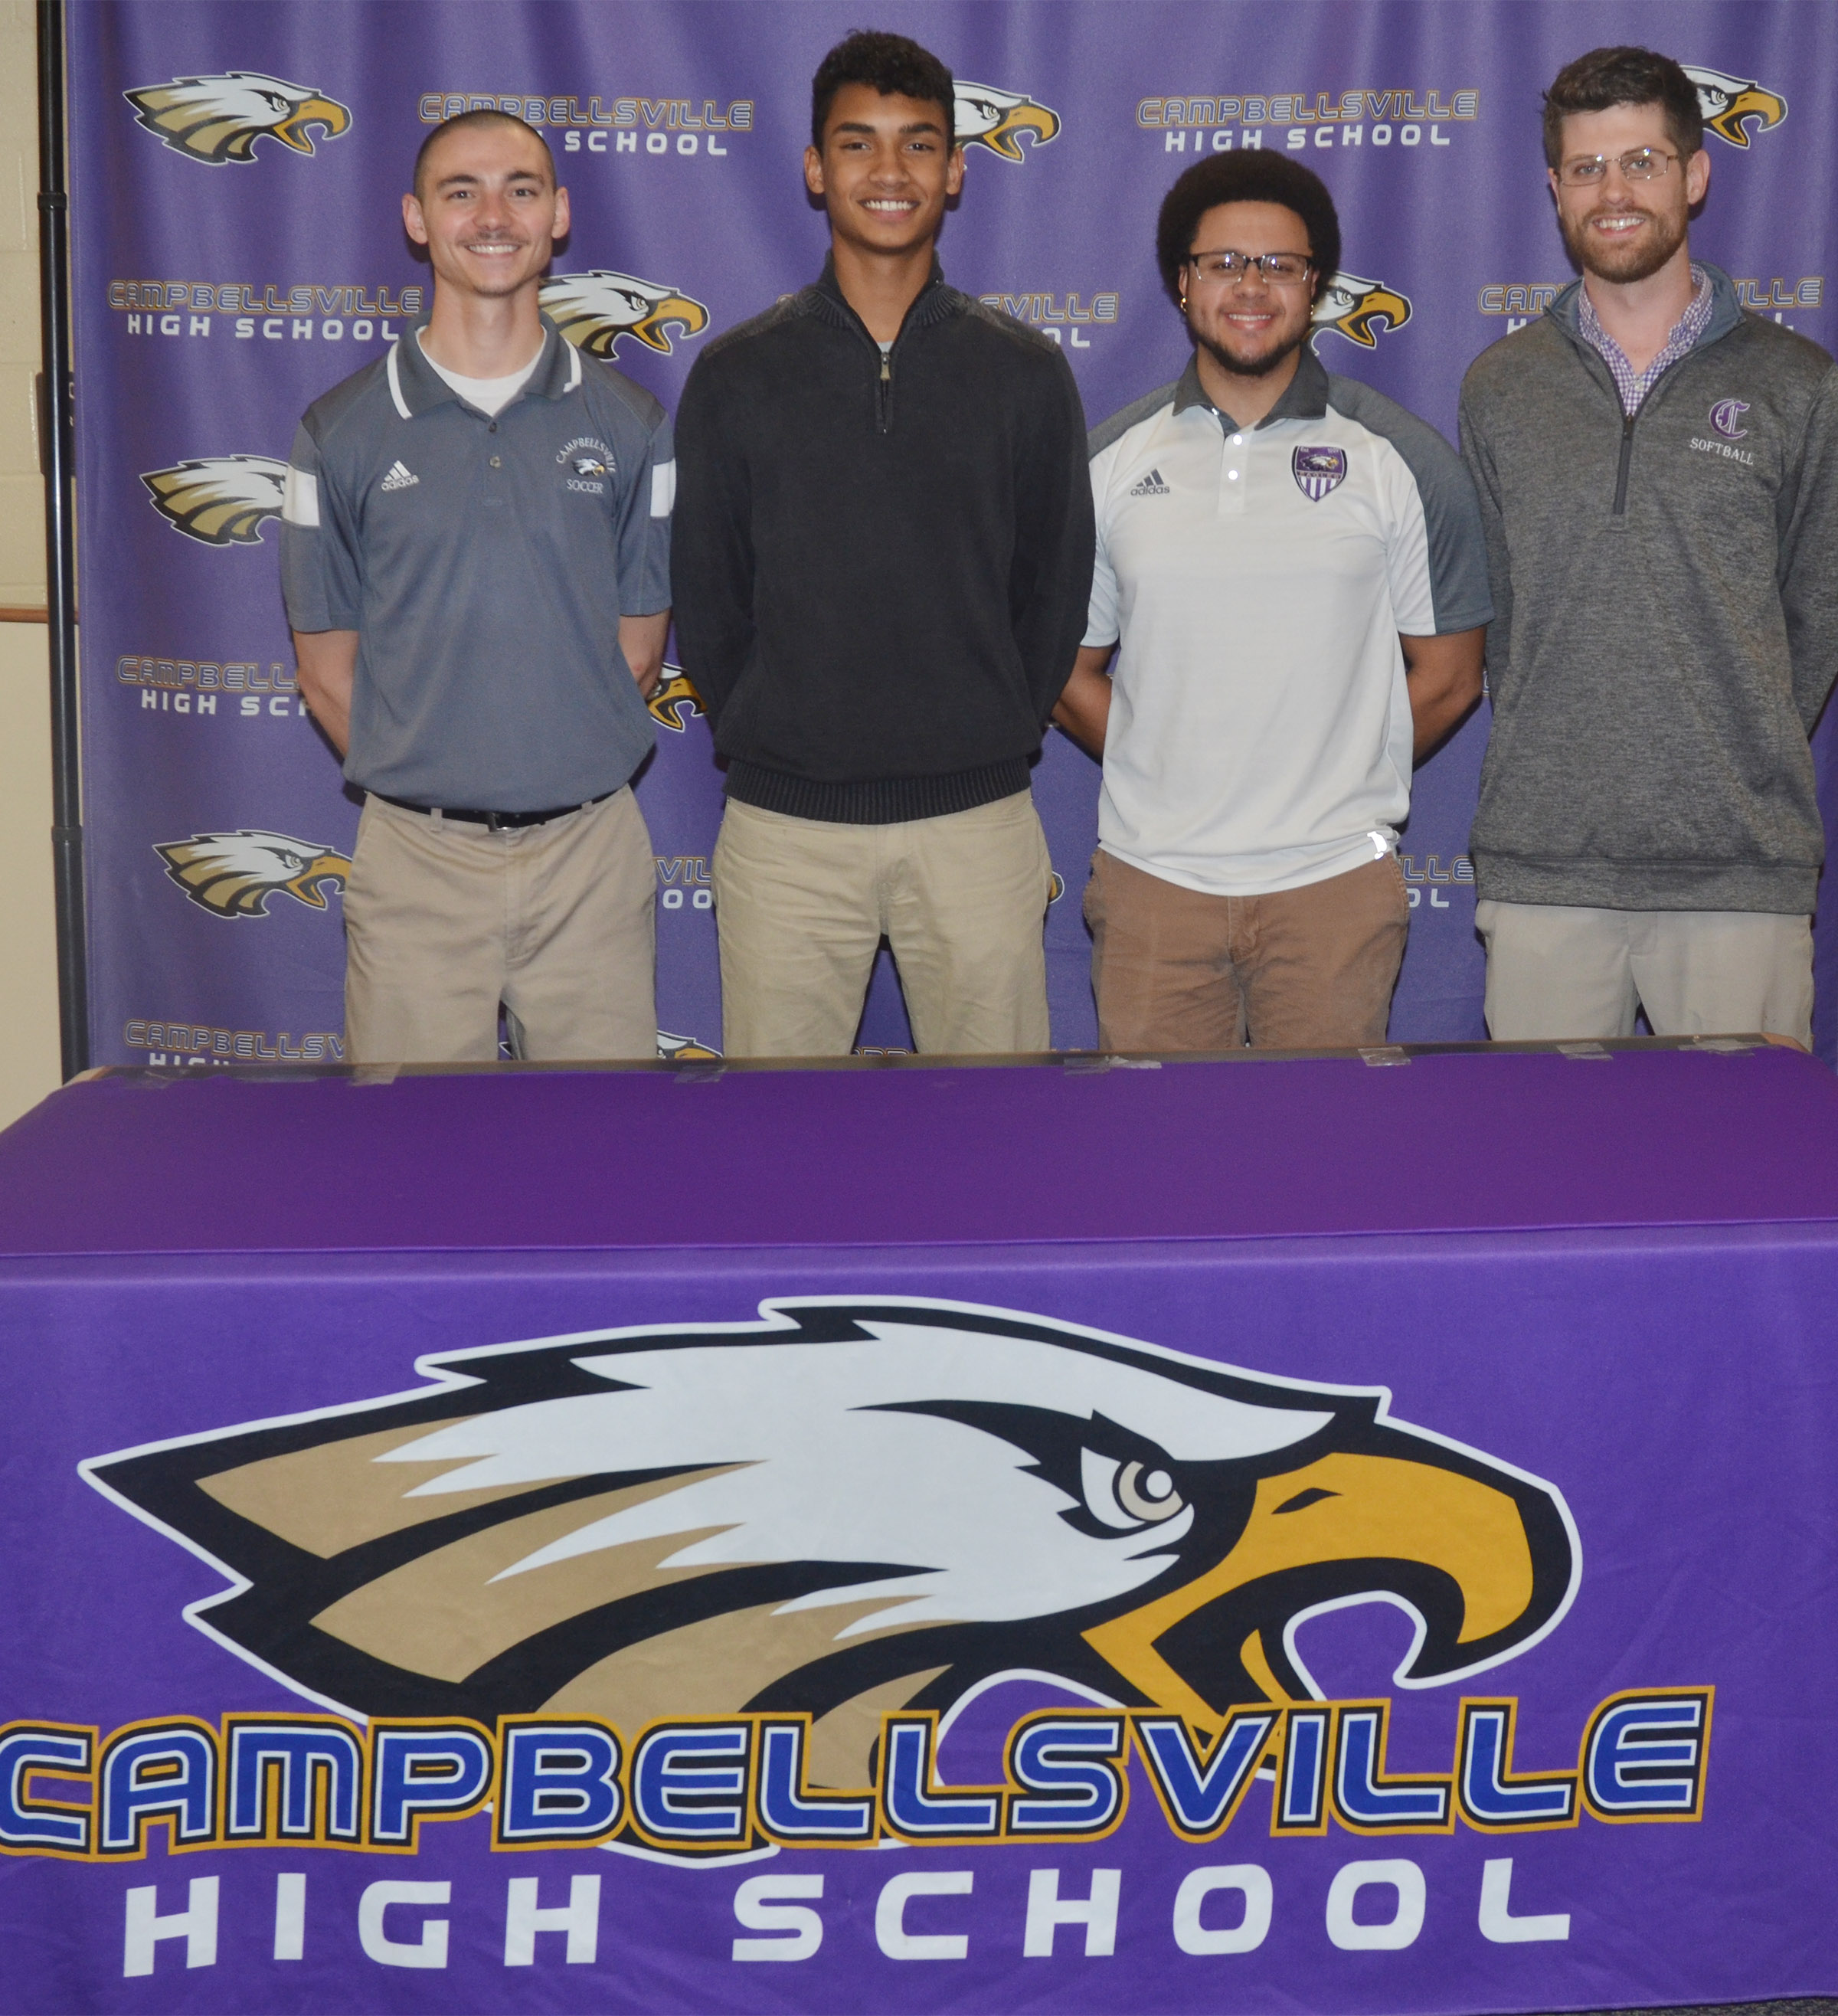 Campbellsville High School soccer player Daniel Silva will continue his academic and athletic career at Campbellsville University. Silva recently signed his letter of intent in a special ceremony with friends, family members, classmates and teammates. From left are CHS head soccer coach Bradley Harris, Silva and assistant coaches Malique Spaulding and Matt Schmuck.